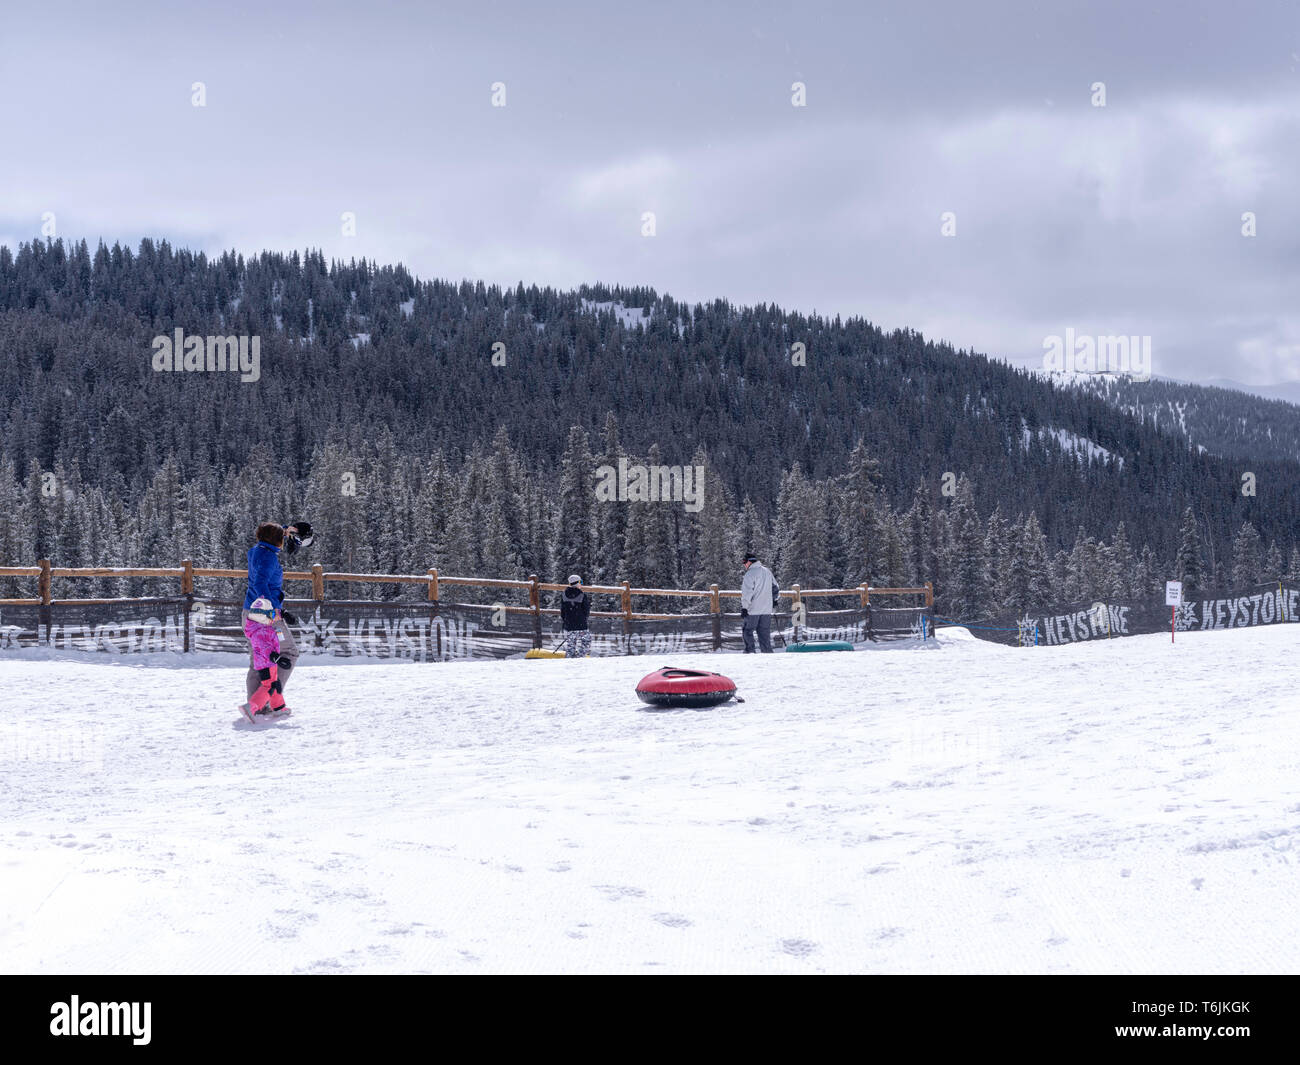 Snow tubing at Keystone Ski Resort, Keystone, Colorado, USA. - Stock Image